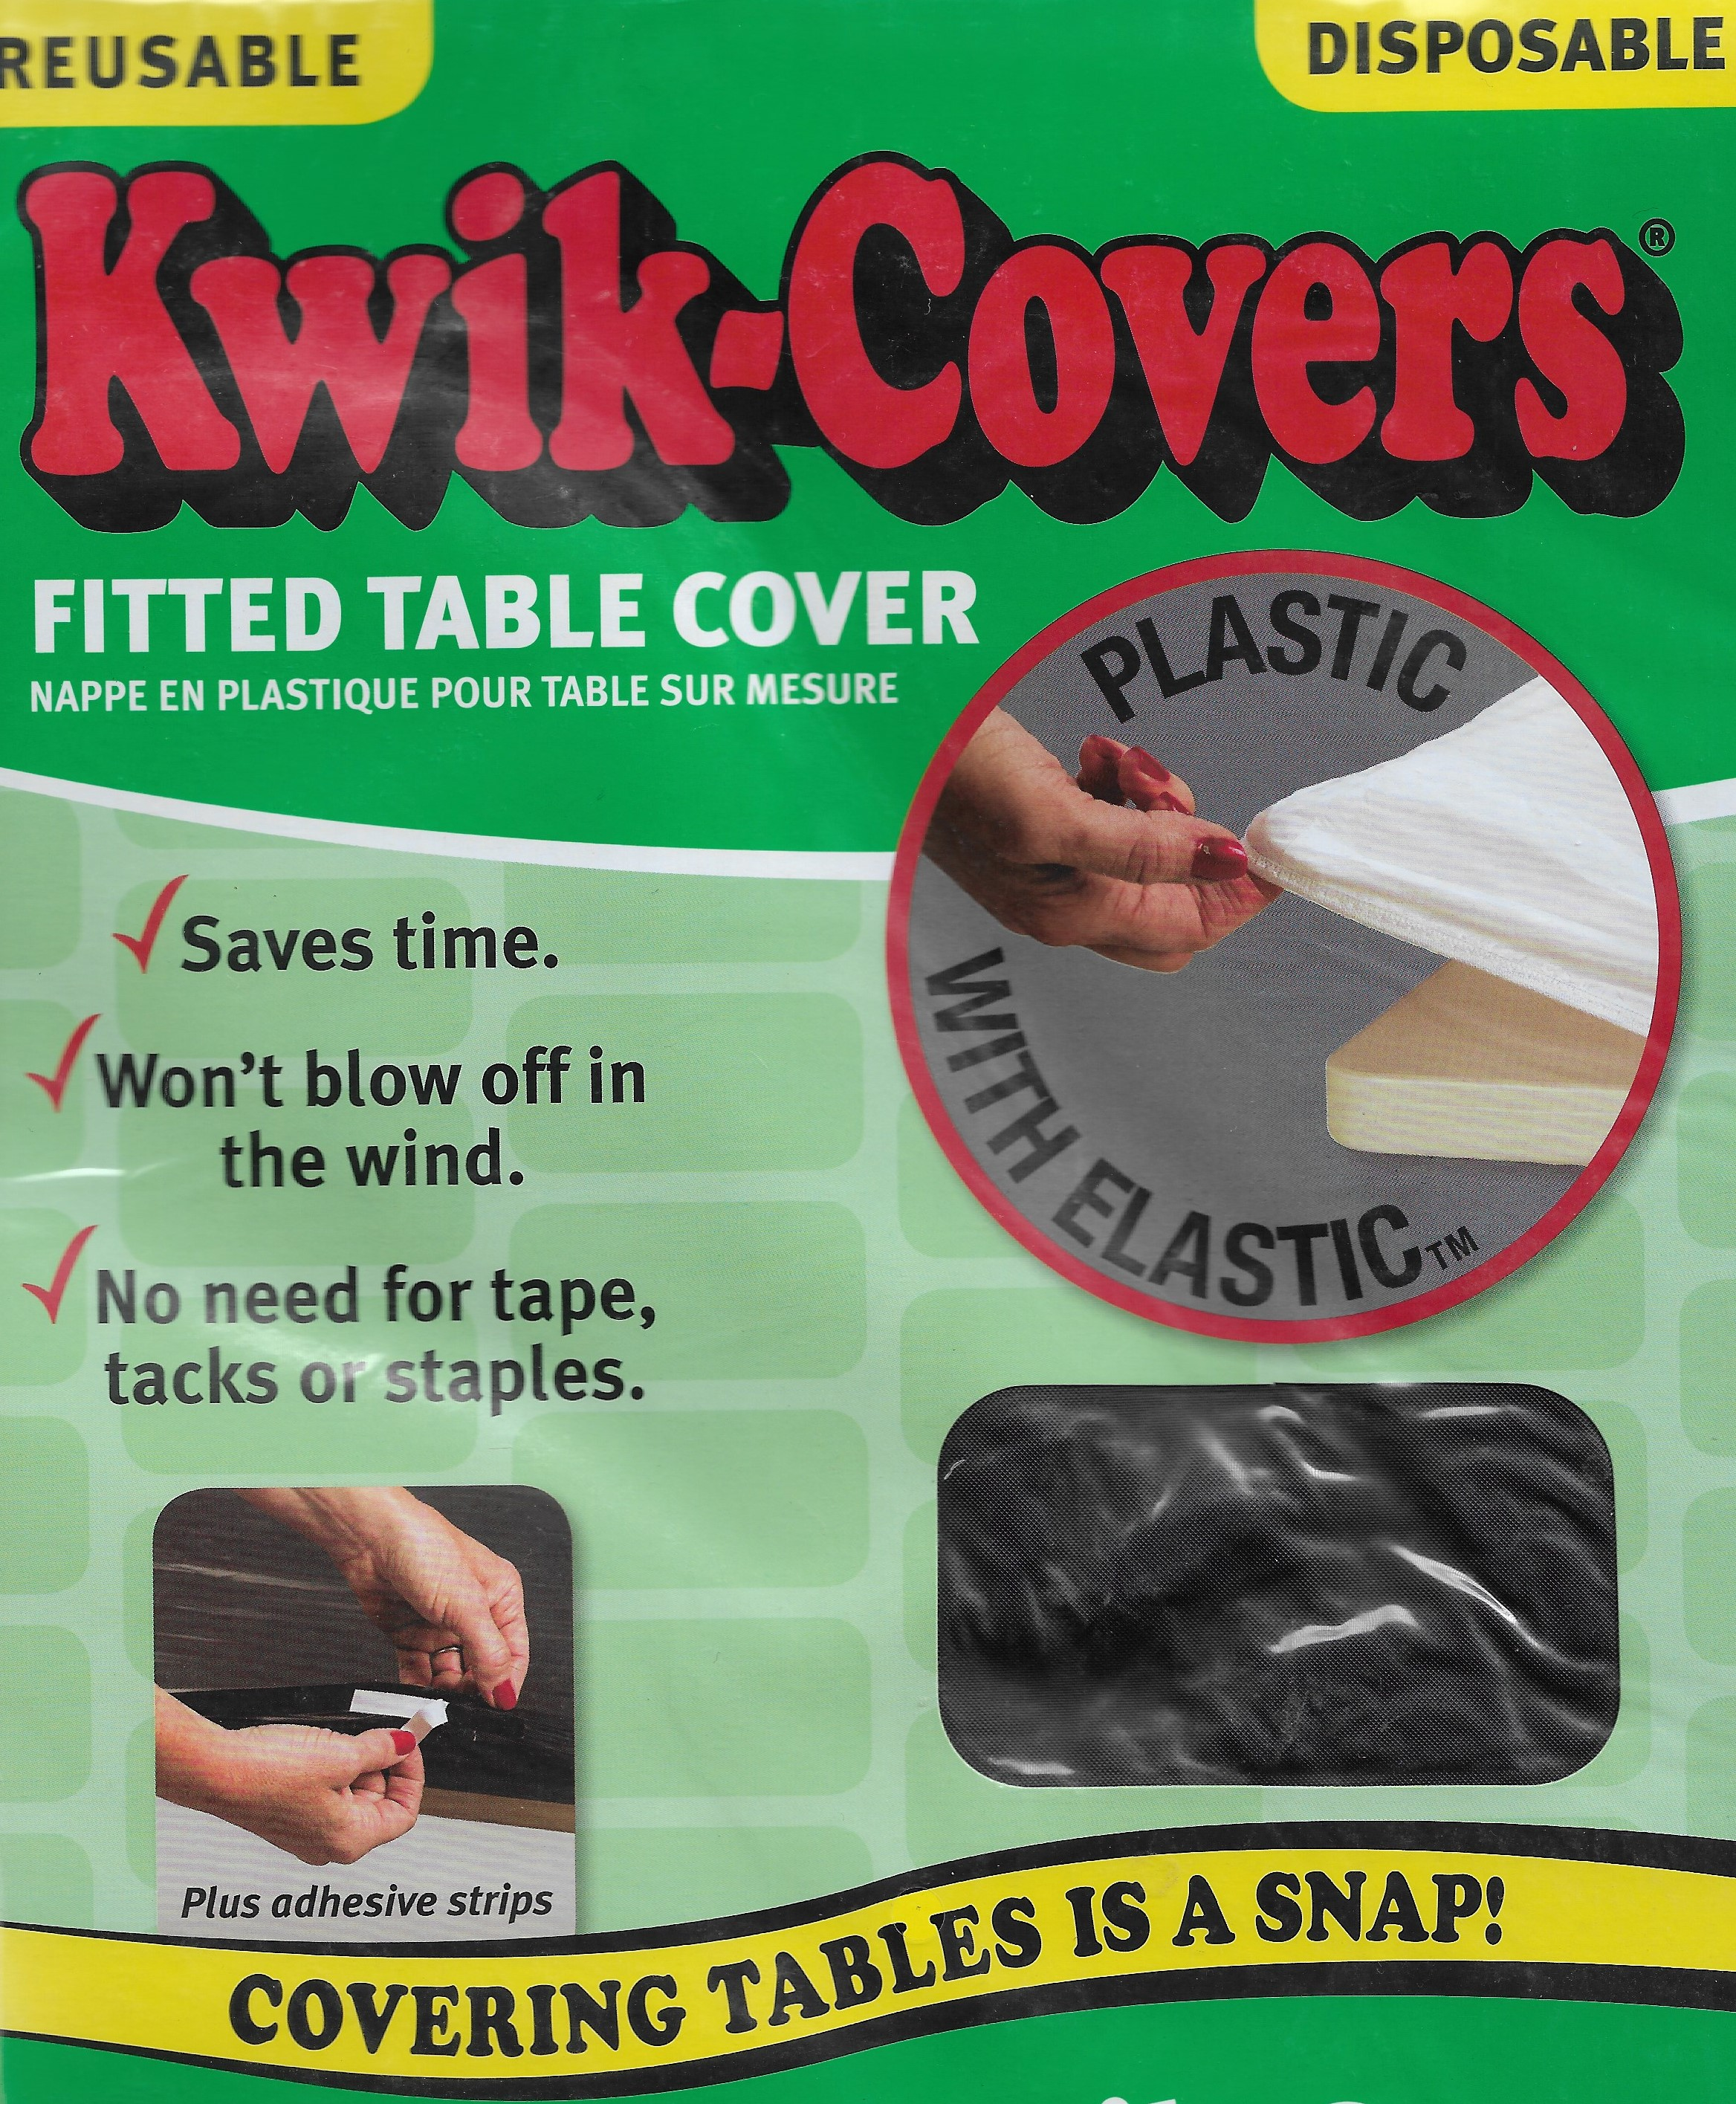 Kwik Covers elastic fitted table cloths